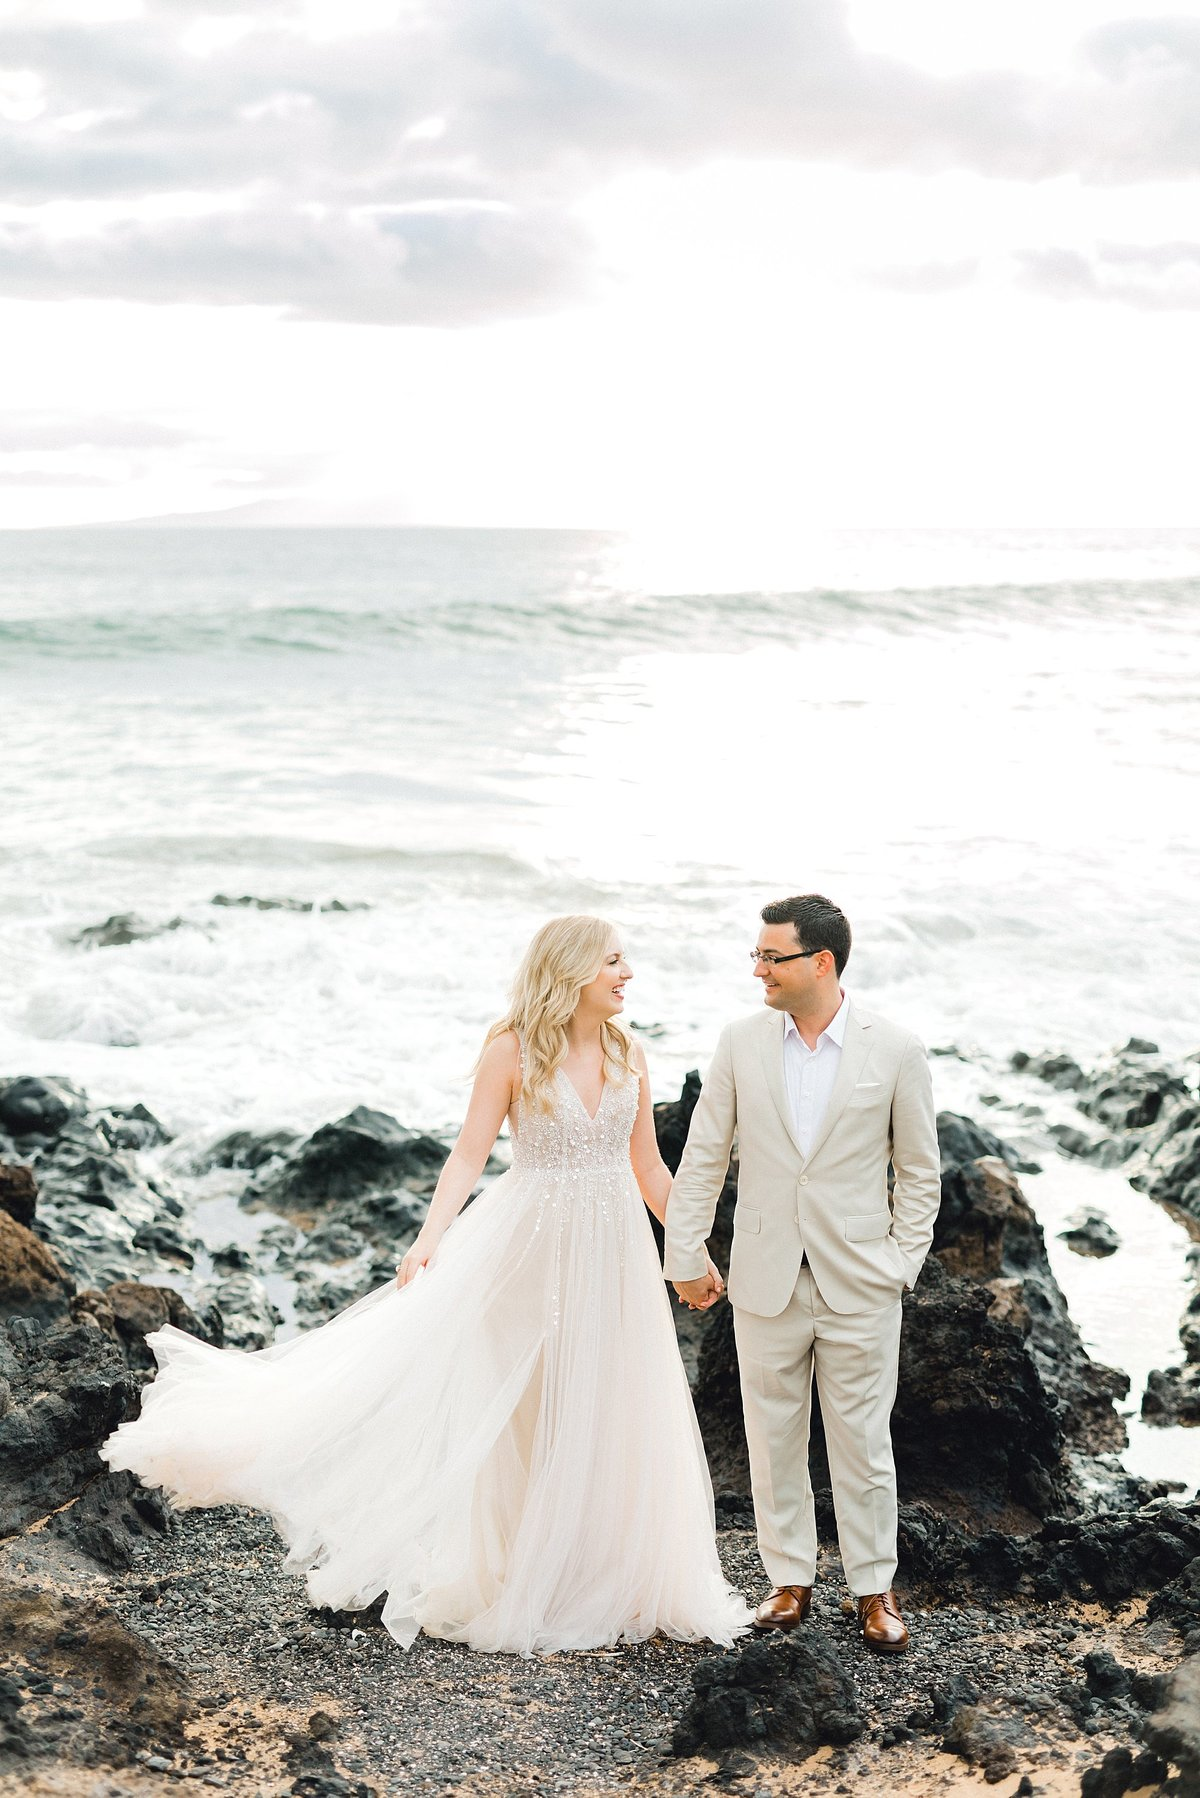 jenny_vargas-photography-maui-wedding-photographer-maui-wedding-photography-maui-photographer-maui-photographers-maui-elopement-photographer-maui-elopement-maui-wedding-maui-engagement-photographer_0955